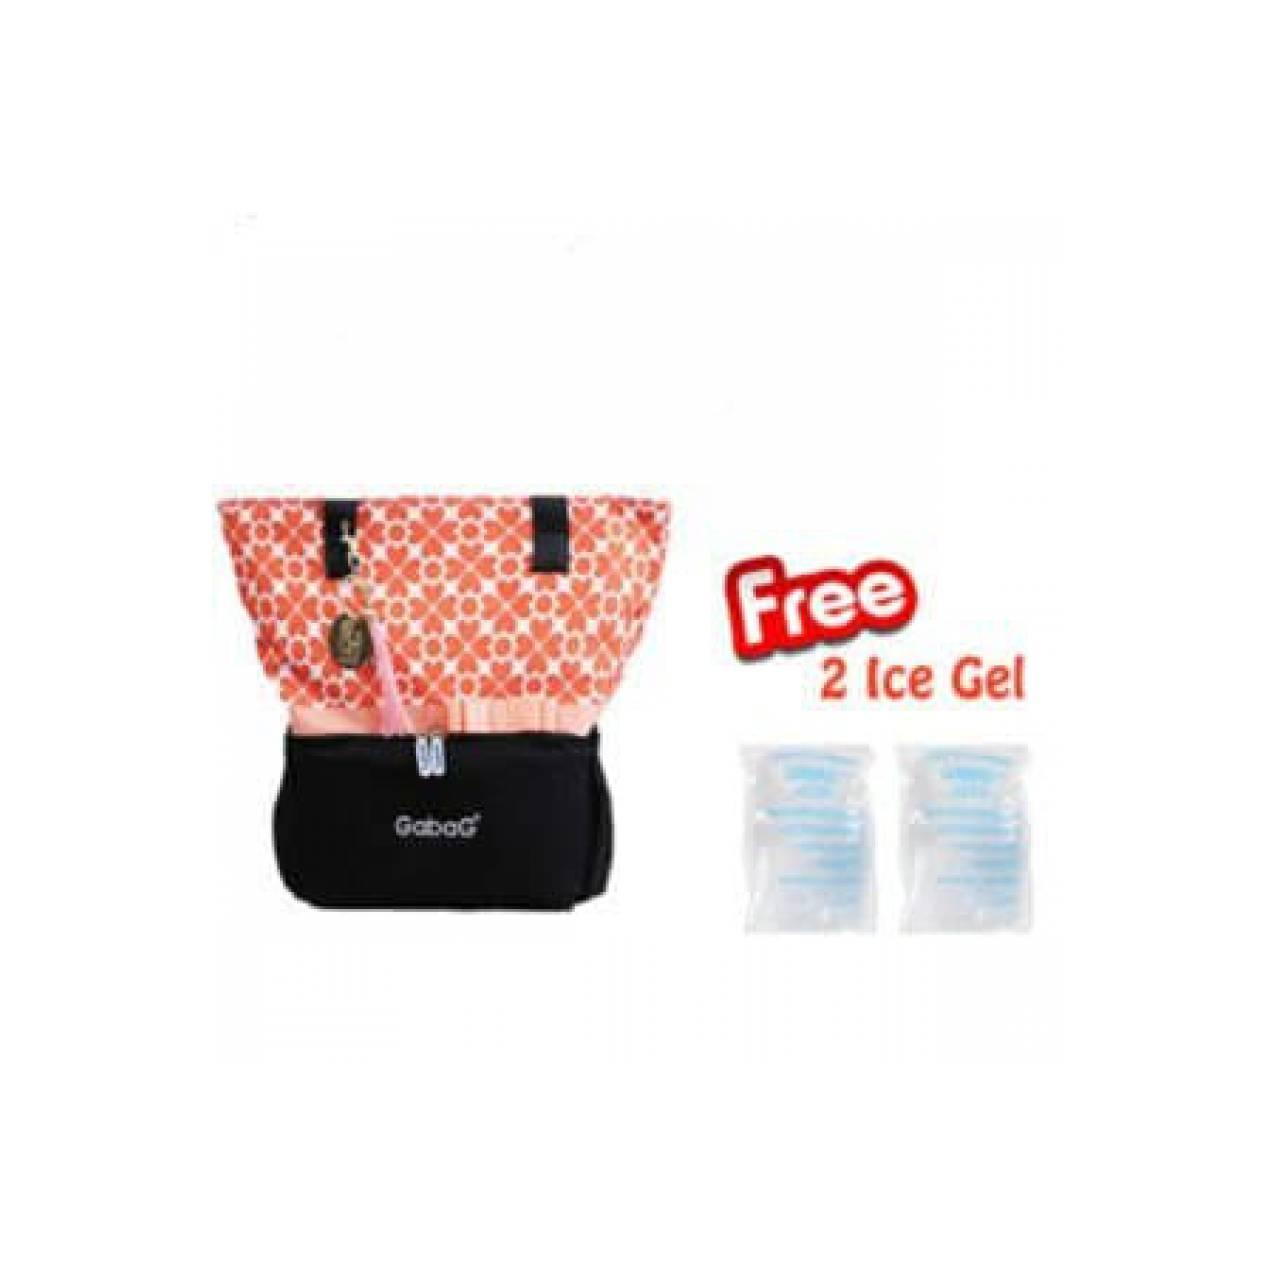 Buy Sell Cheapest New Gabag Cooler Best Quality Product Deals  Ice Gel 2 Pack Bag Tas Penyimpanan Asi Collete Promo